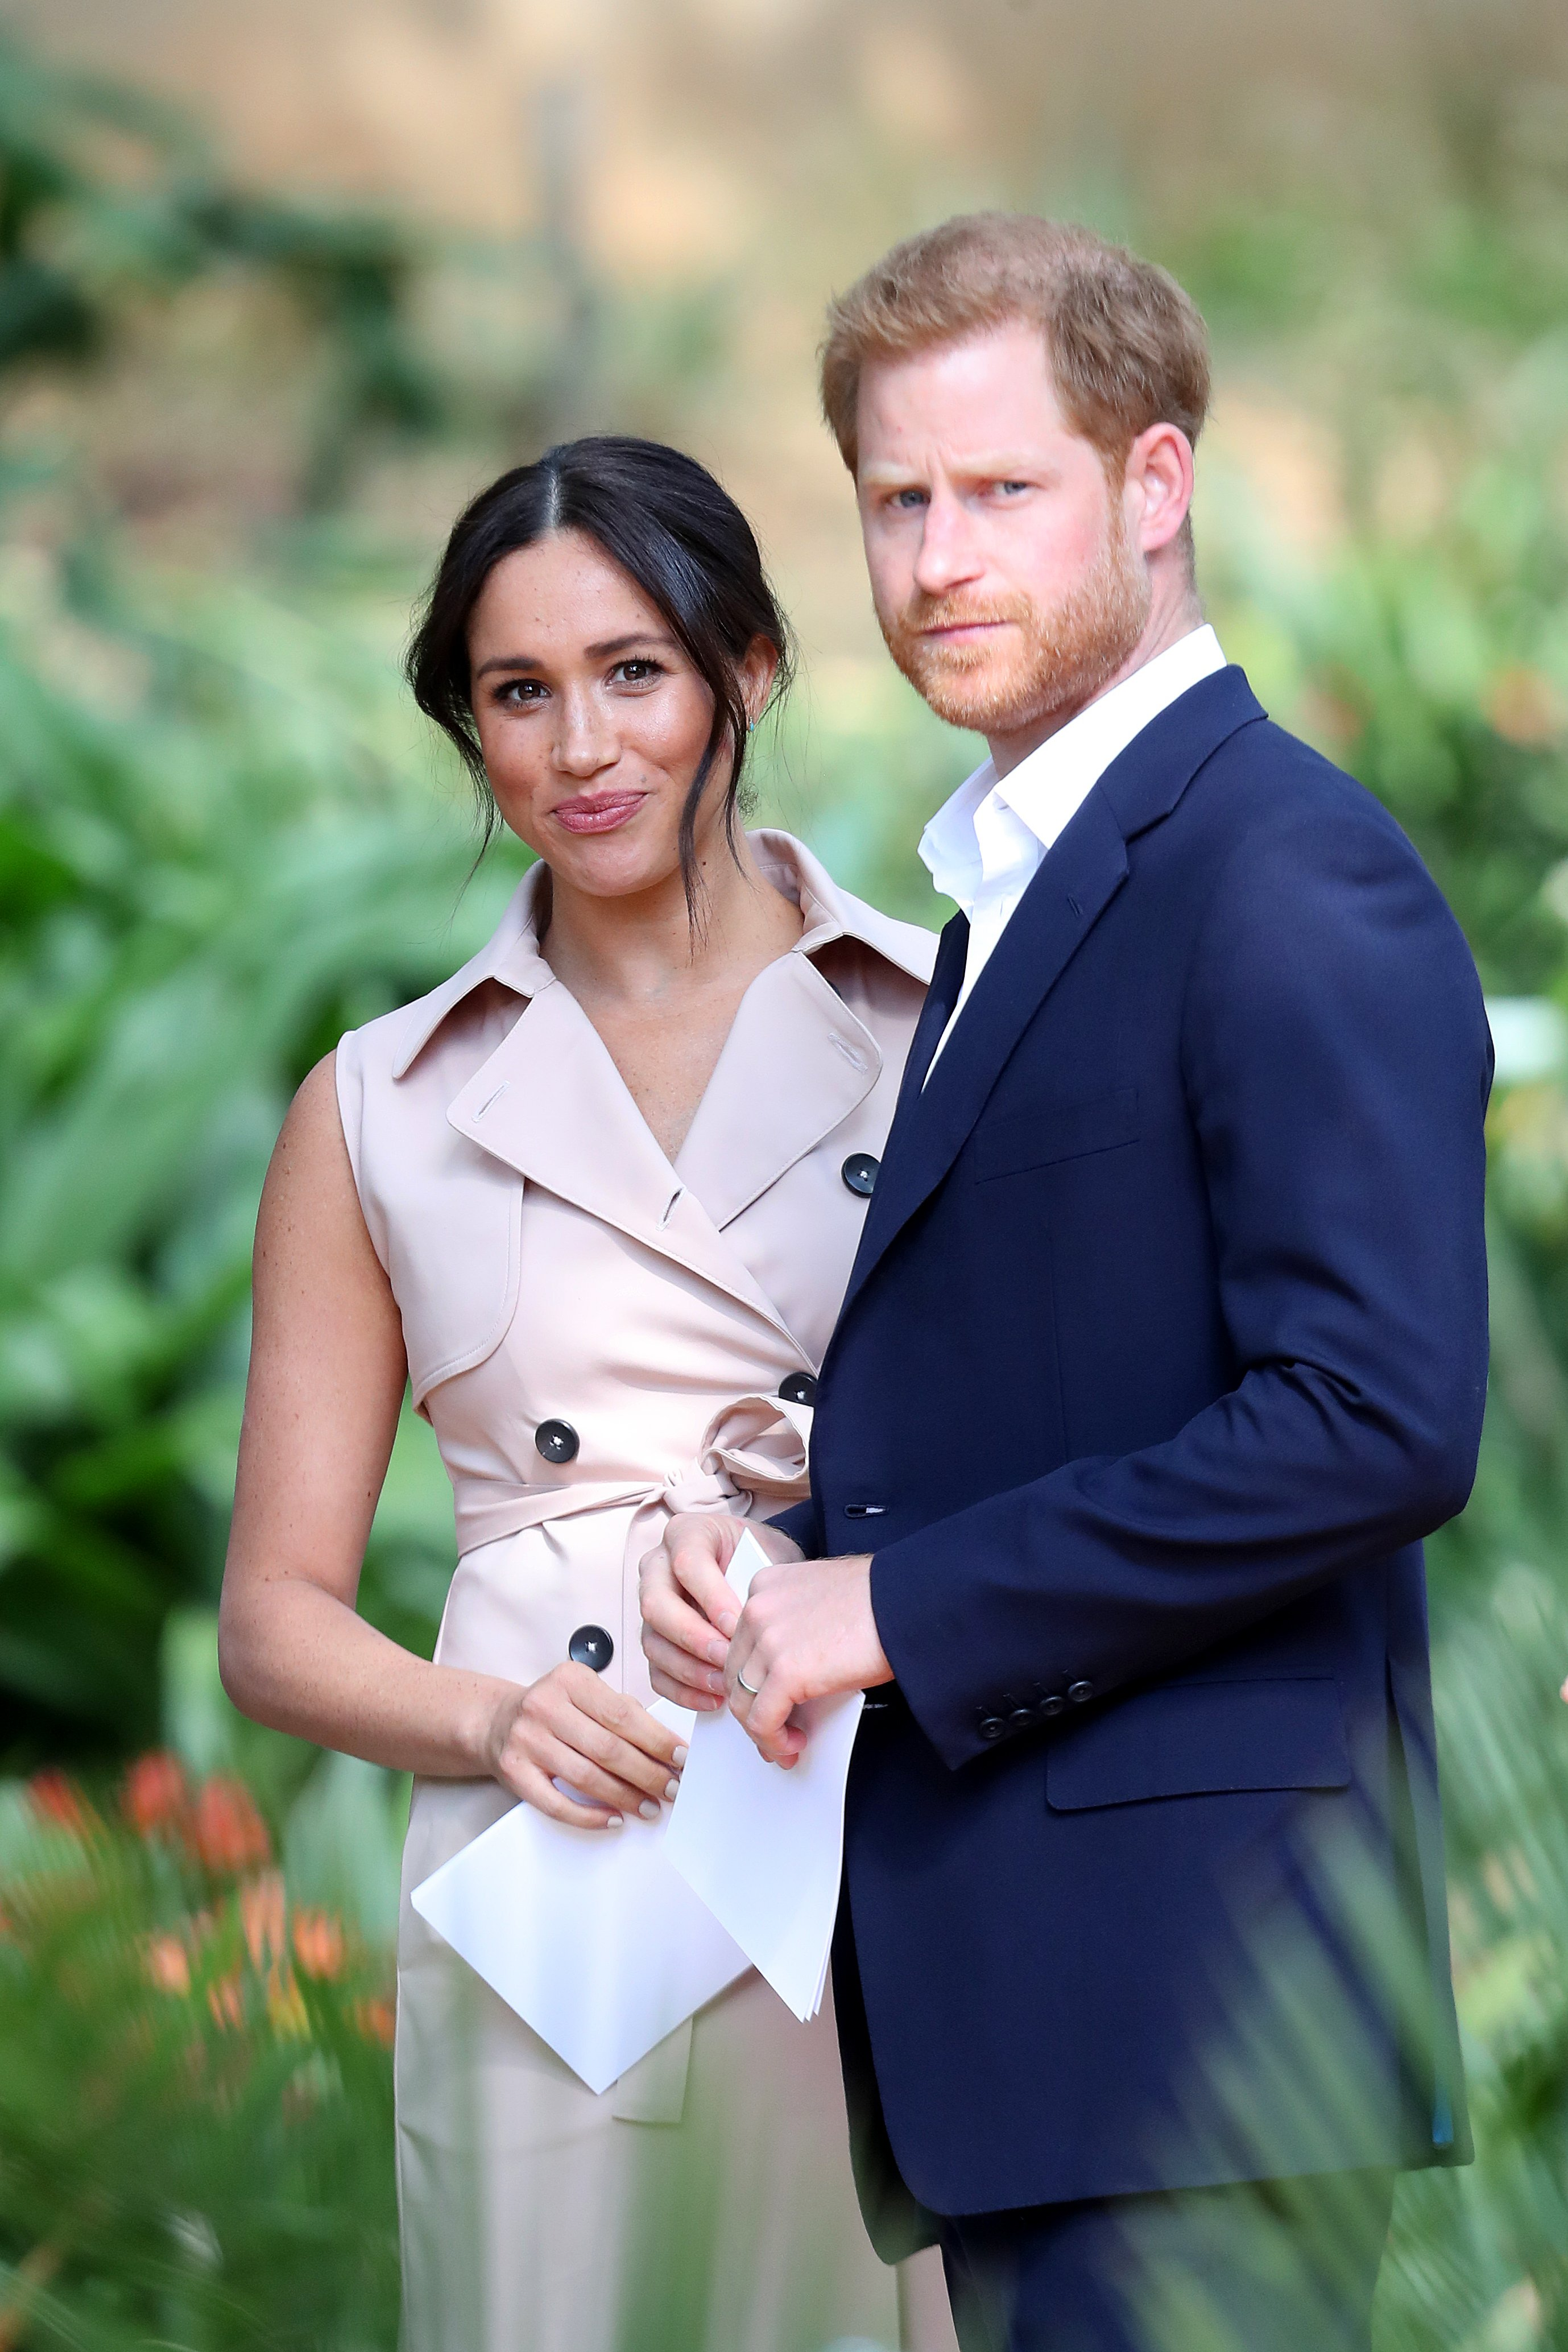 Prince Harry & Meghan Markle at a Creative Industries and Business Reception on Oct. 02, 2019 in South Africa | Photo: Getty Images